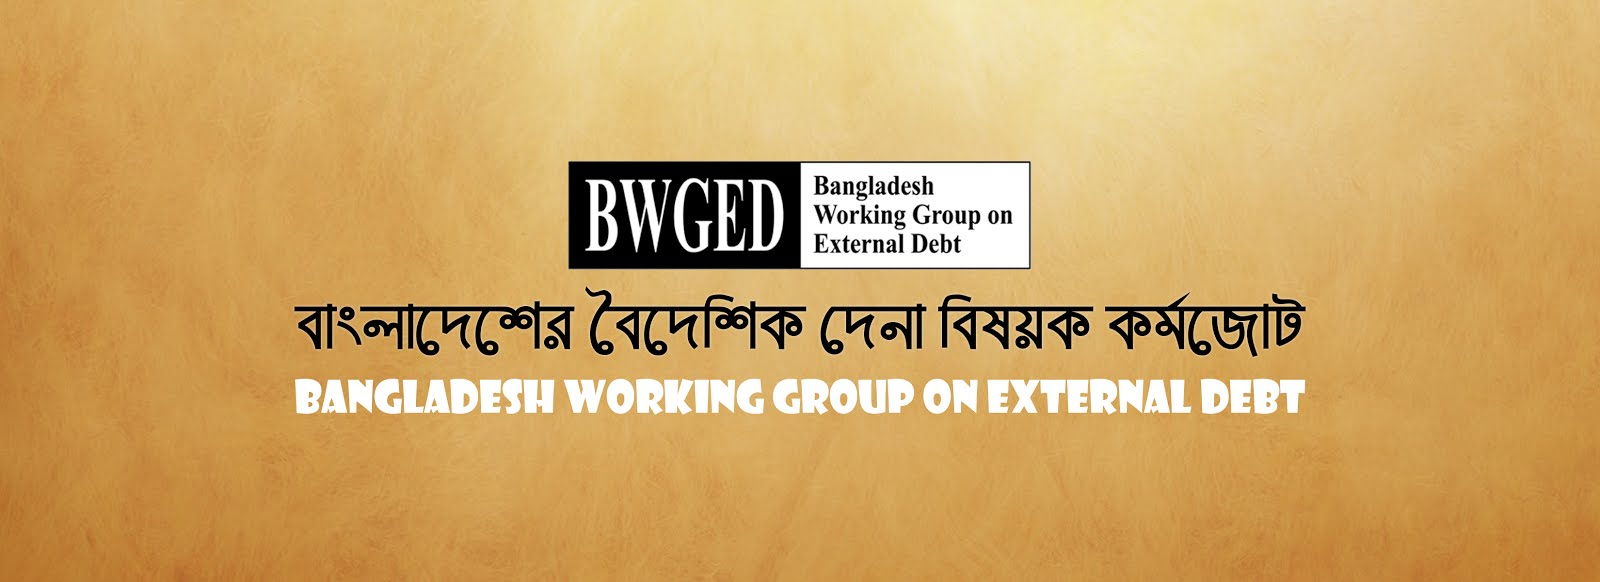 BWGED (Bangladesh Working Group on External Debt)